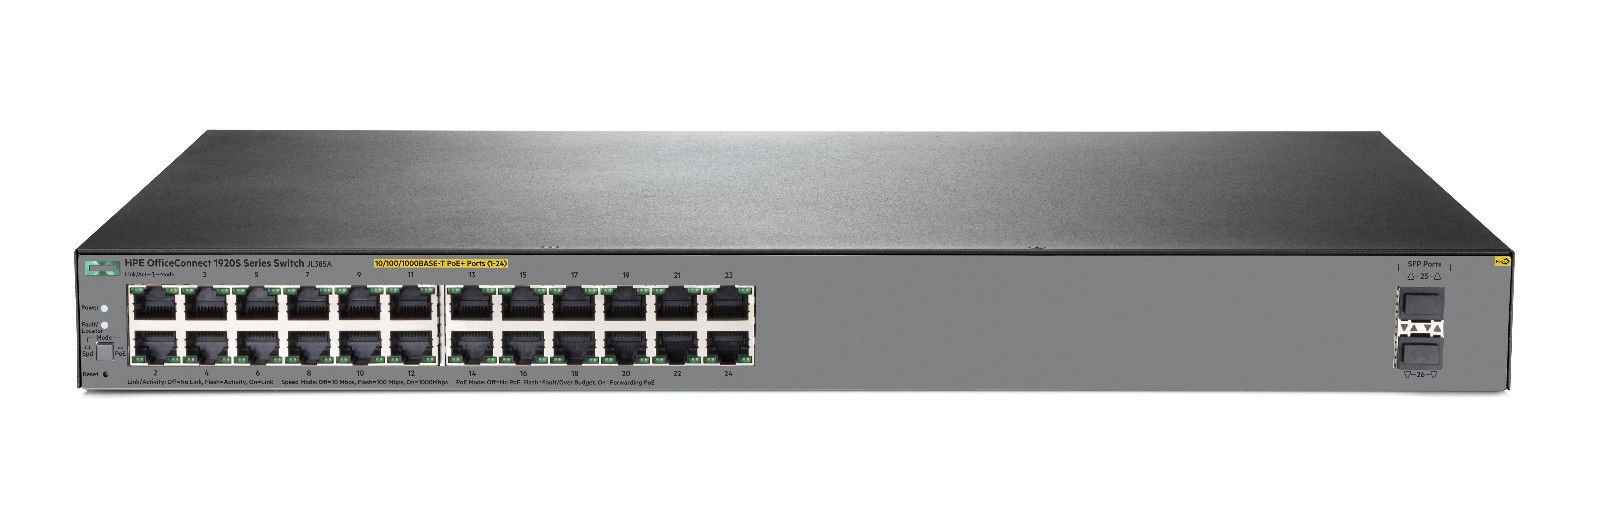 NEW HP HPE OfficeConnect 1920S 24G 2SFP PoE+ 370W Switch JL385A#ABA